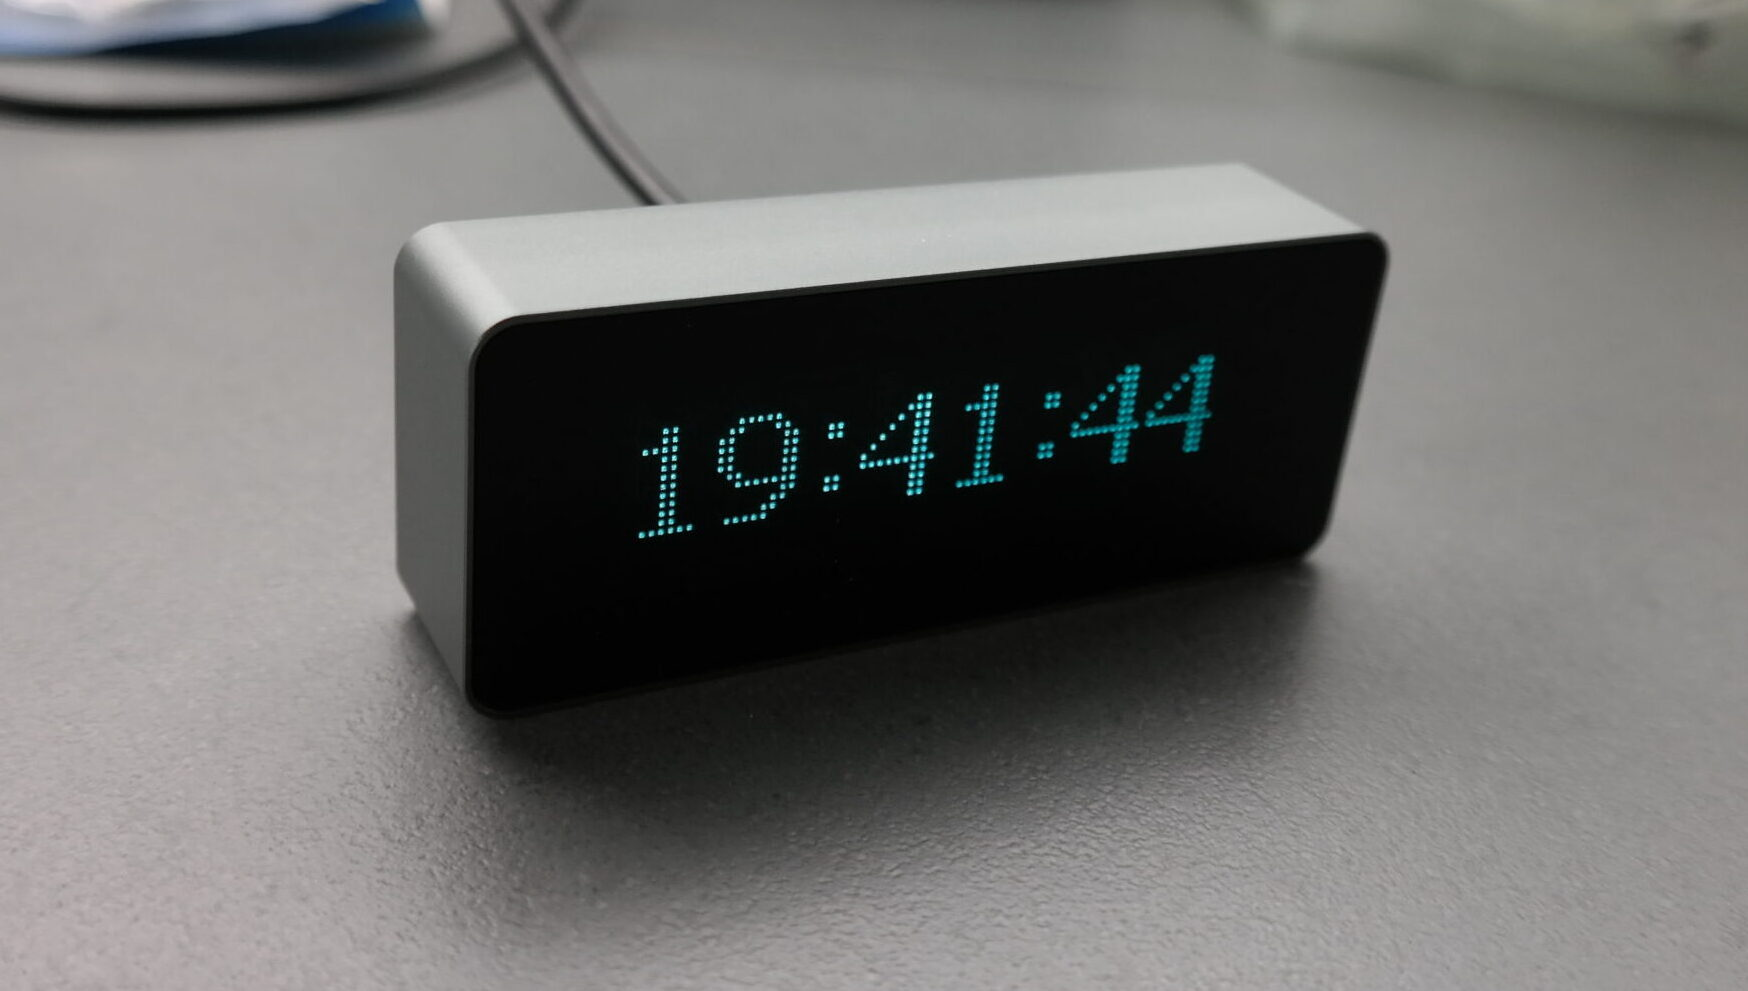 Audio Spectrum Indicator and Digital Clock with Remote Control